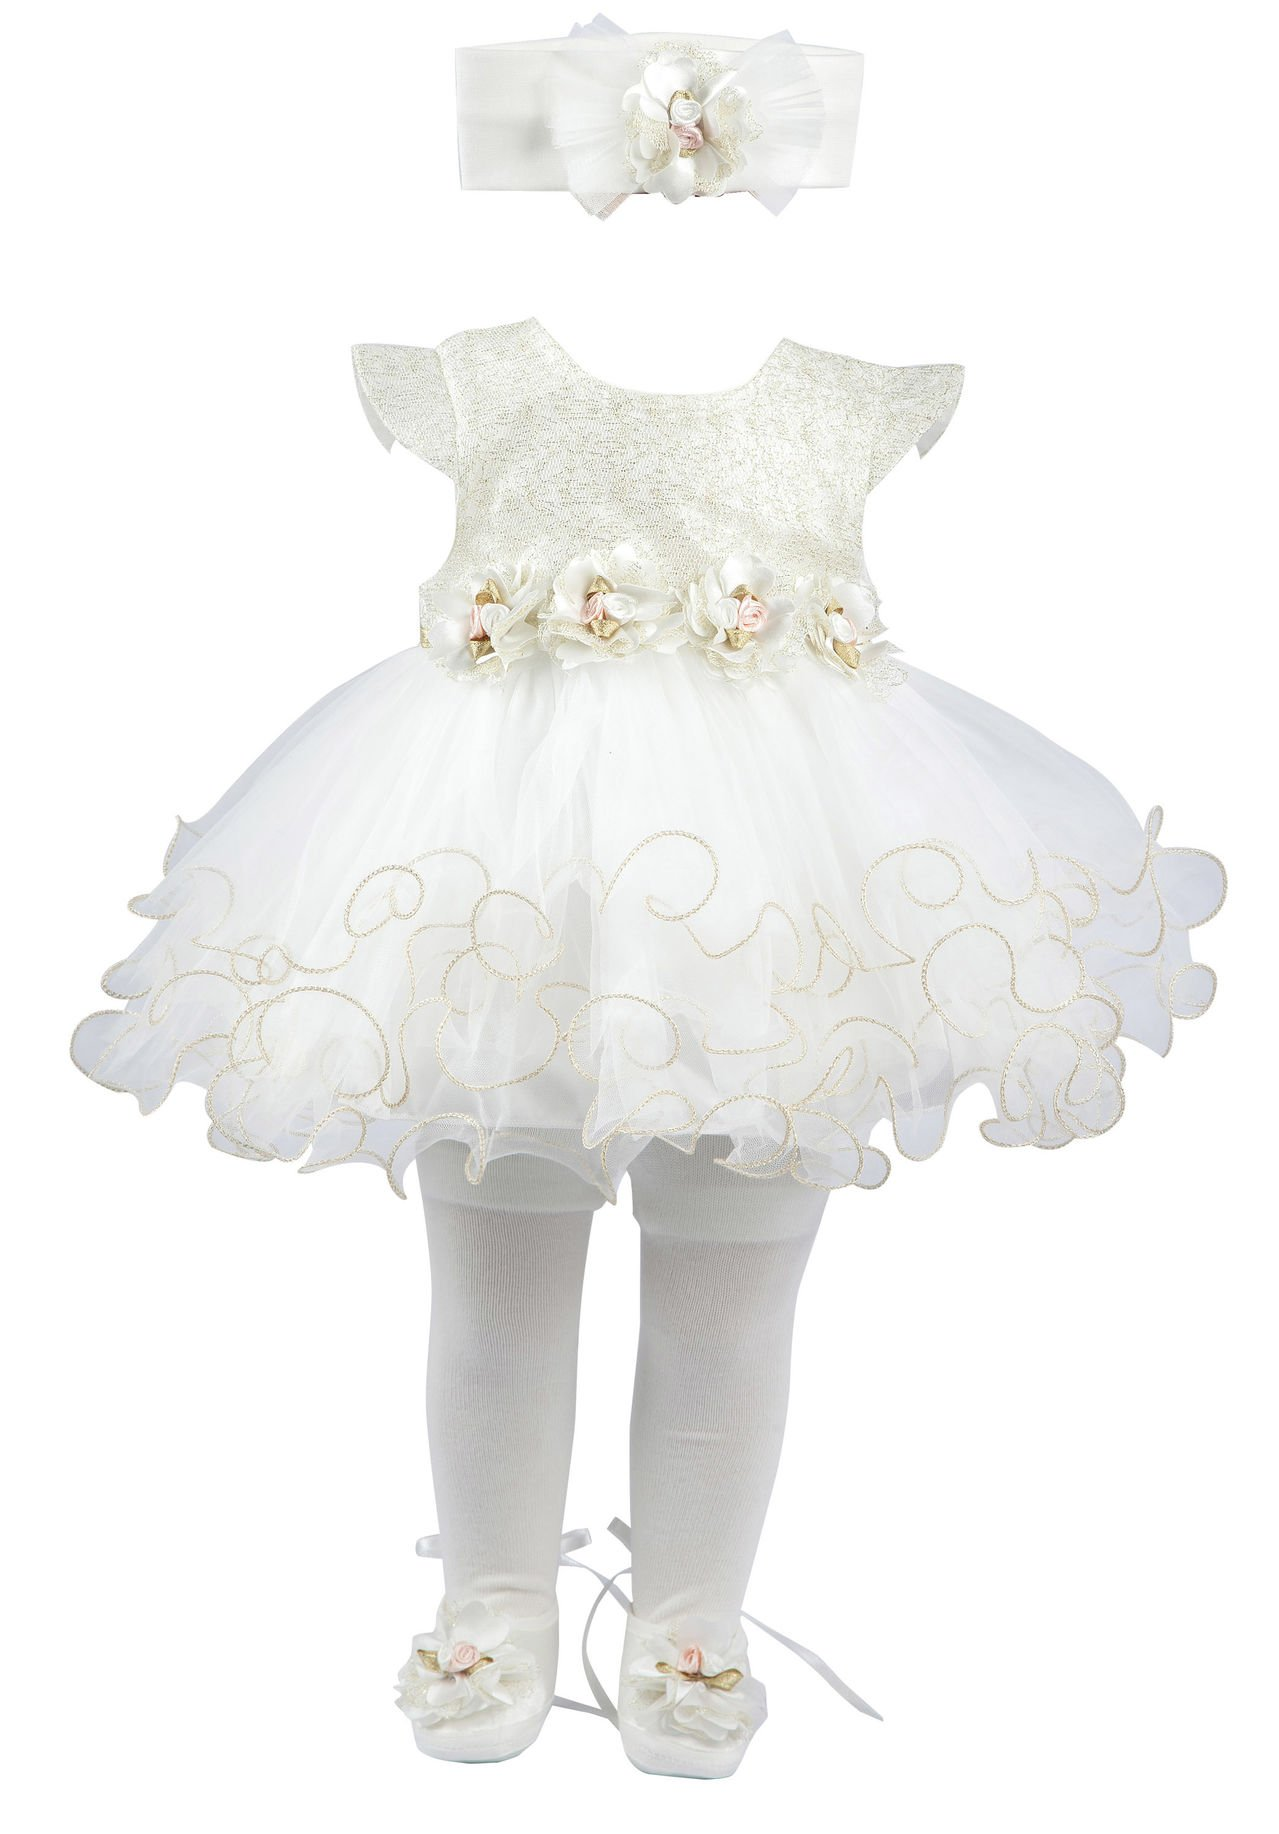 Taffy Baby Girl Newborn Gold Glitter Floral Dress Gown 6, White, Size 0-3 Monhts by T.F. Taffy